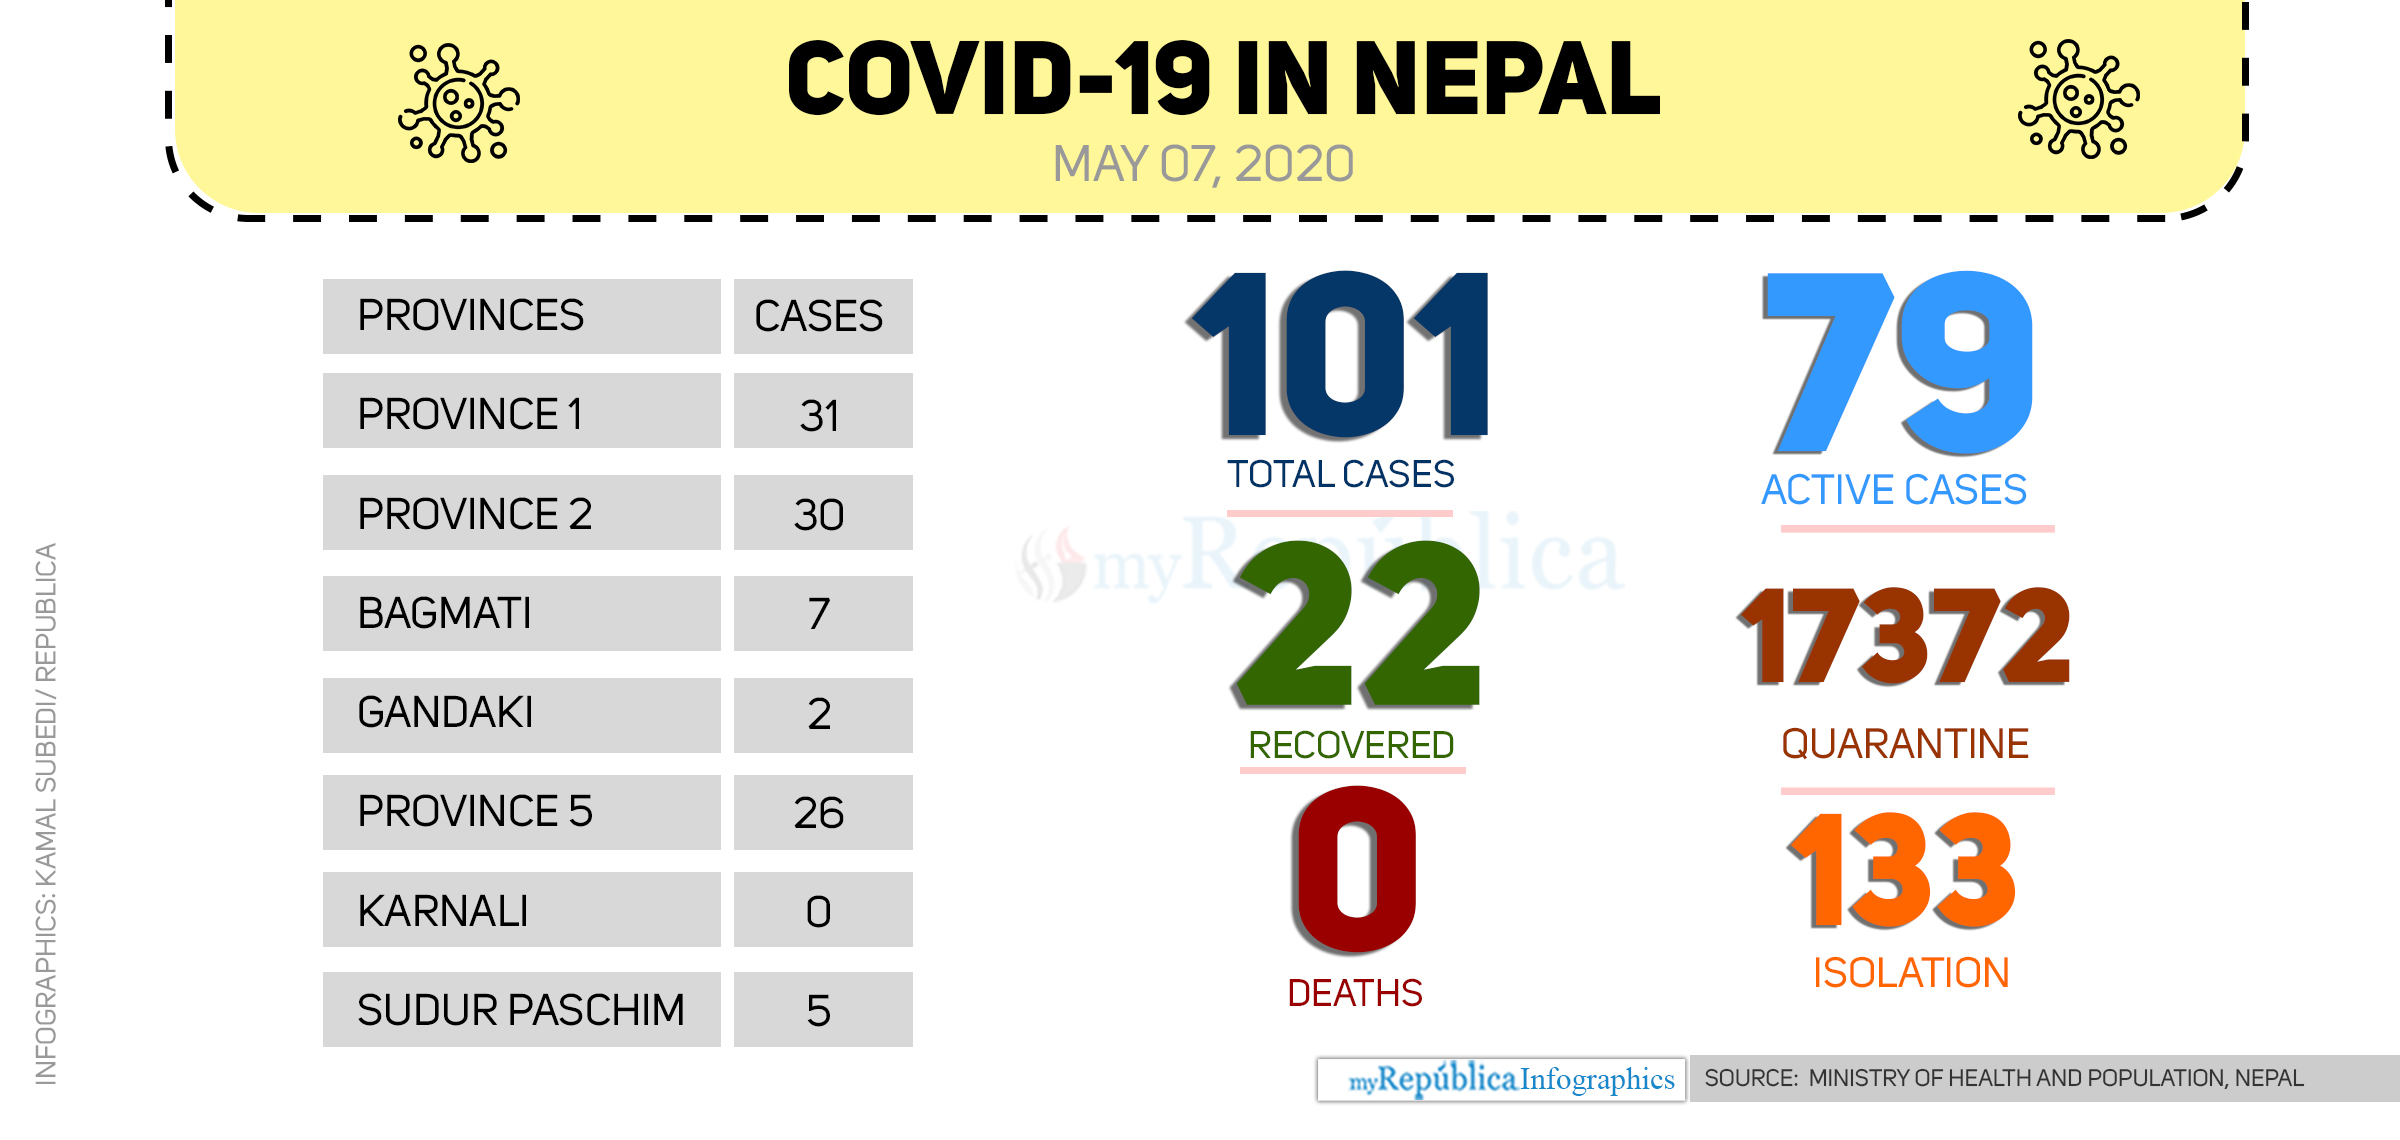 Nepal's COVID-19 tally reaches 101 with two new cases today